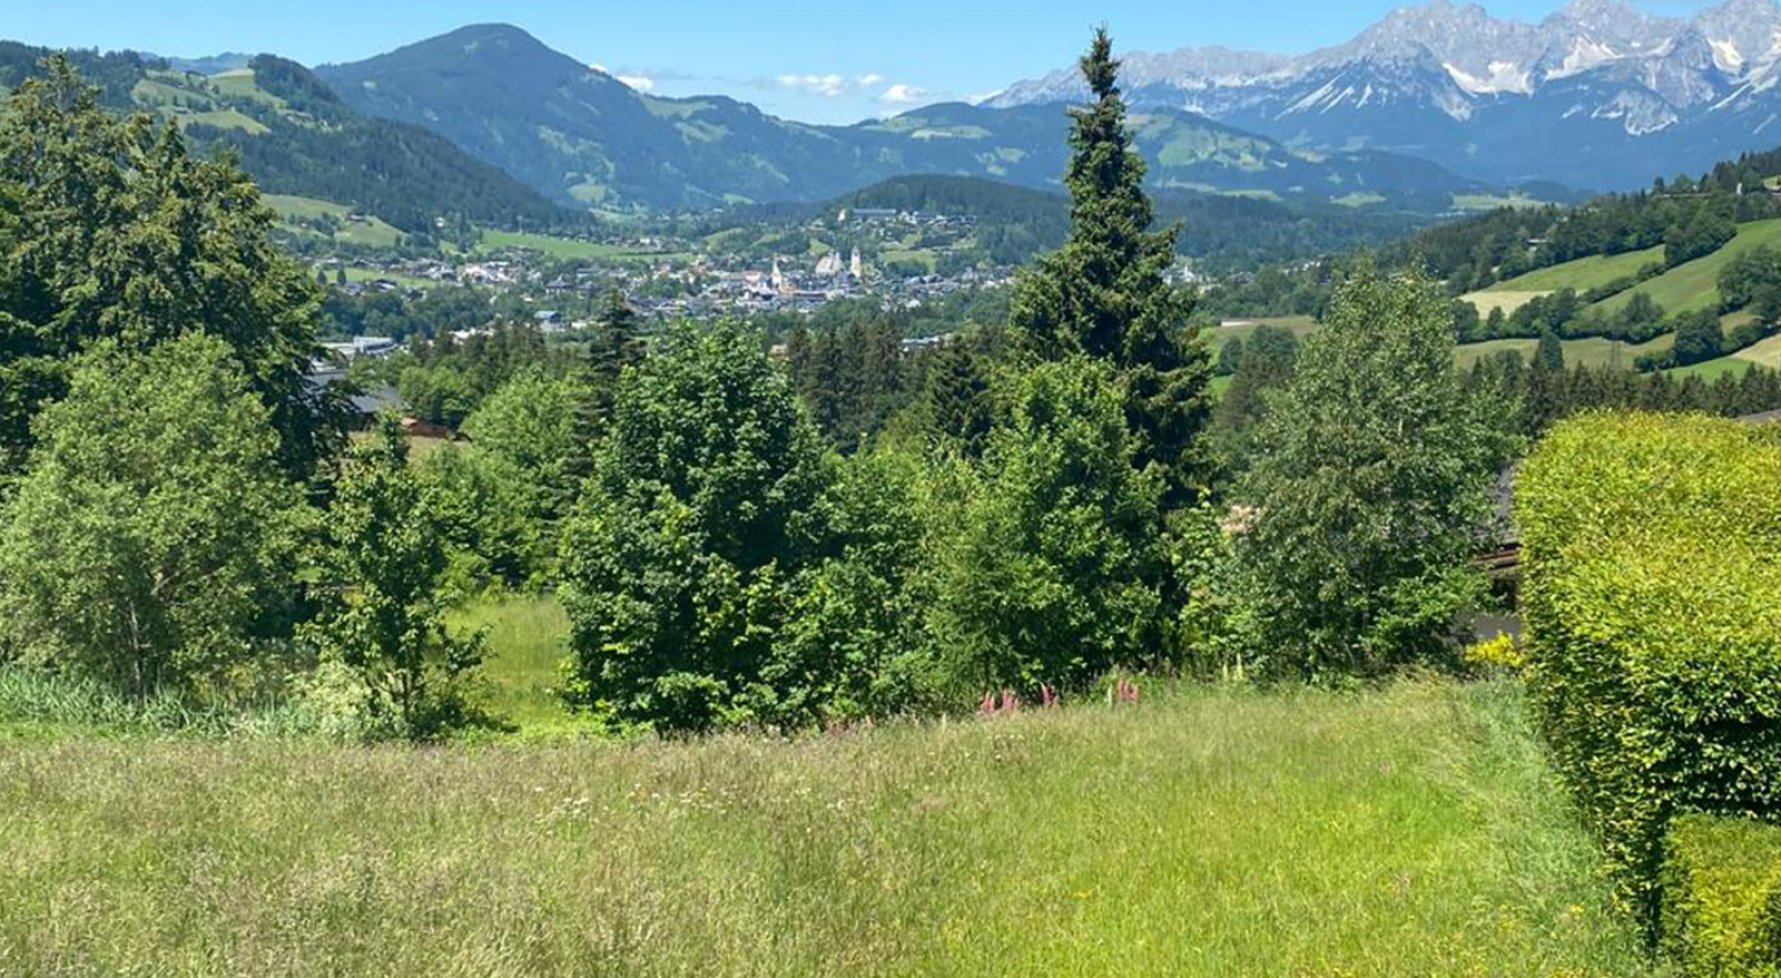 Property in 6370  Kitzbühel: PRIME LOCATION ON BICHLALM-Exclusive villa in panoramic position - picture 1